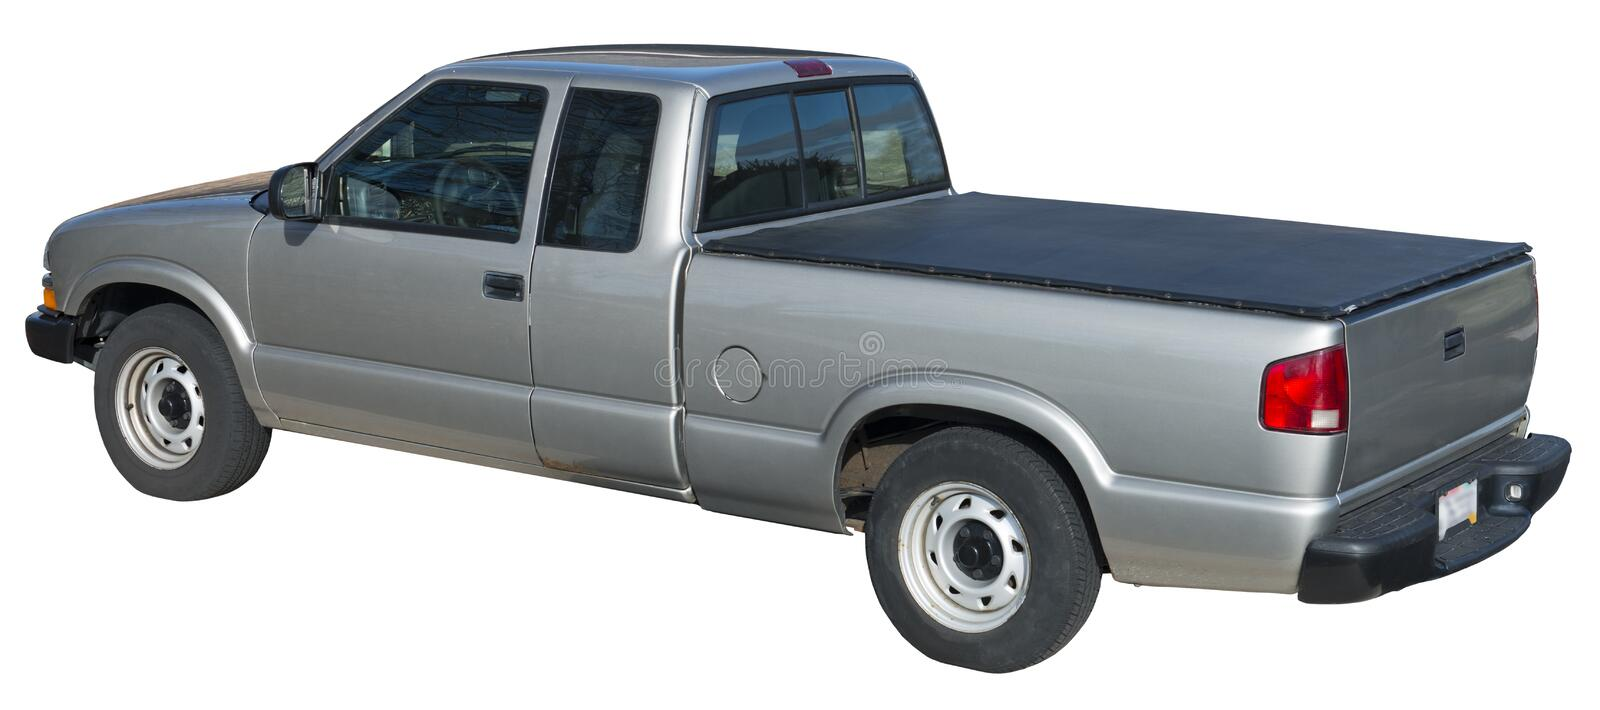 Gray Pick Up Truck, Tonneau Cover Isolated stock images